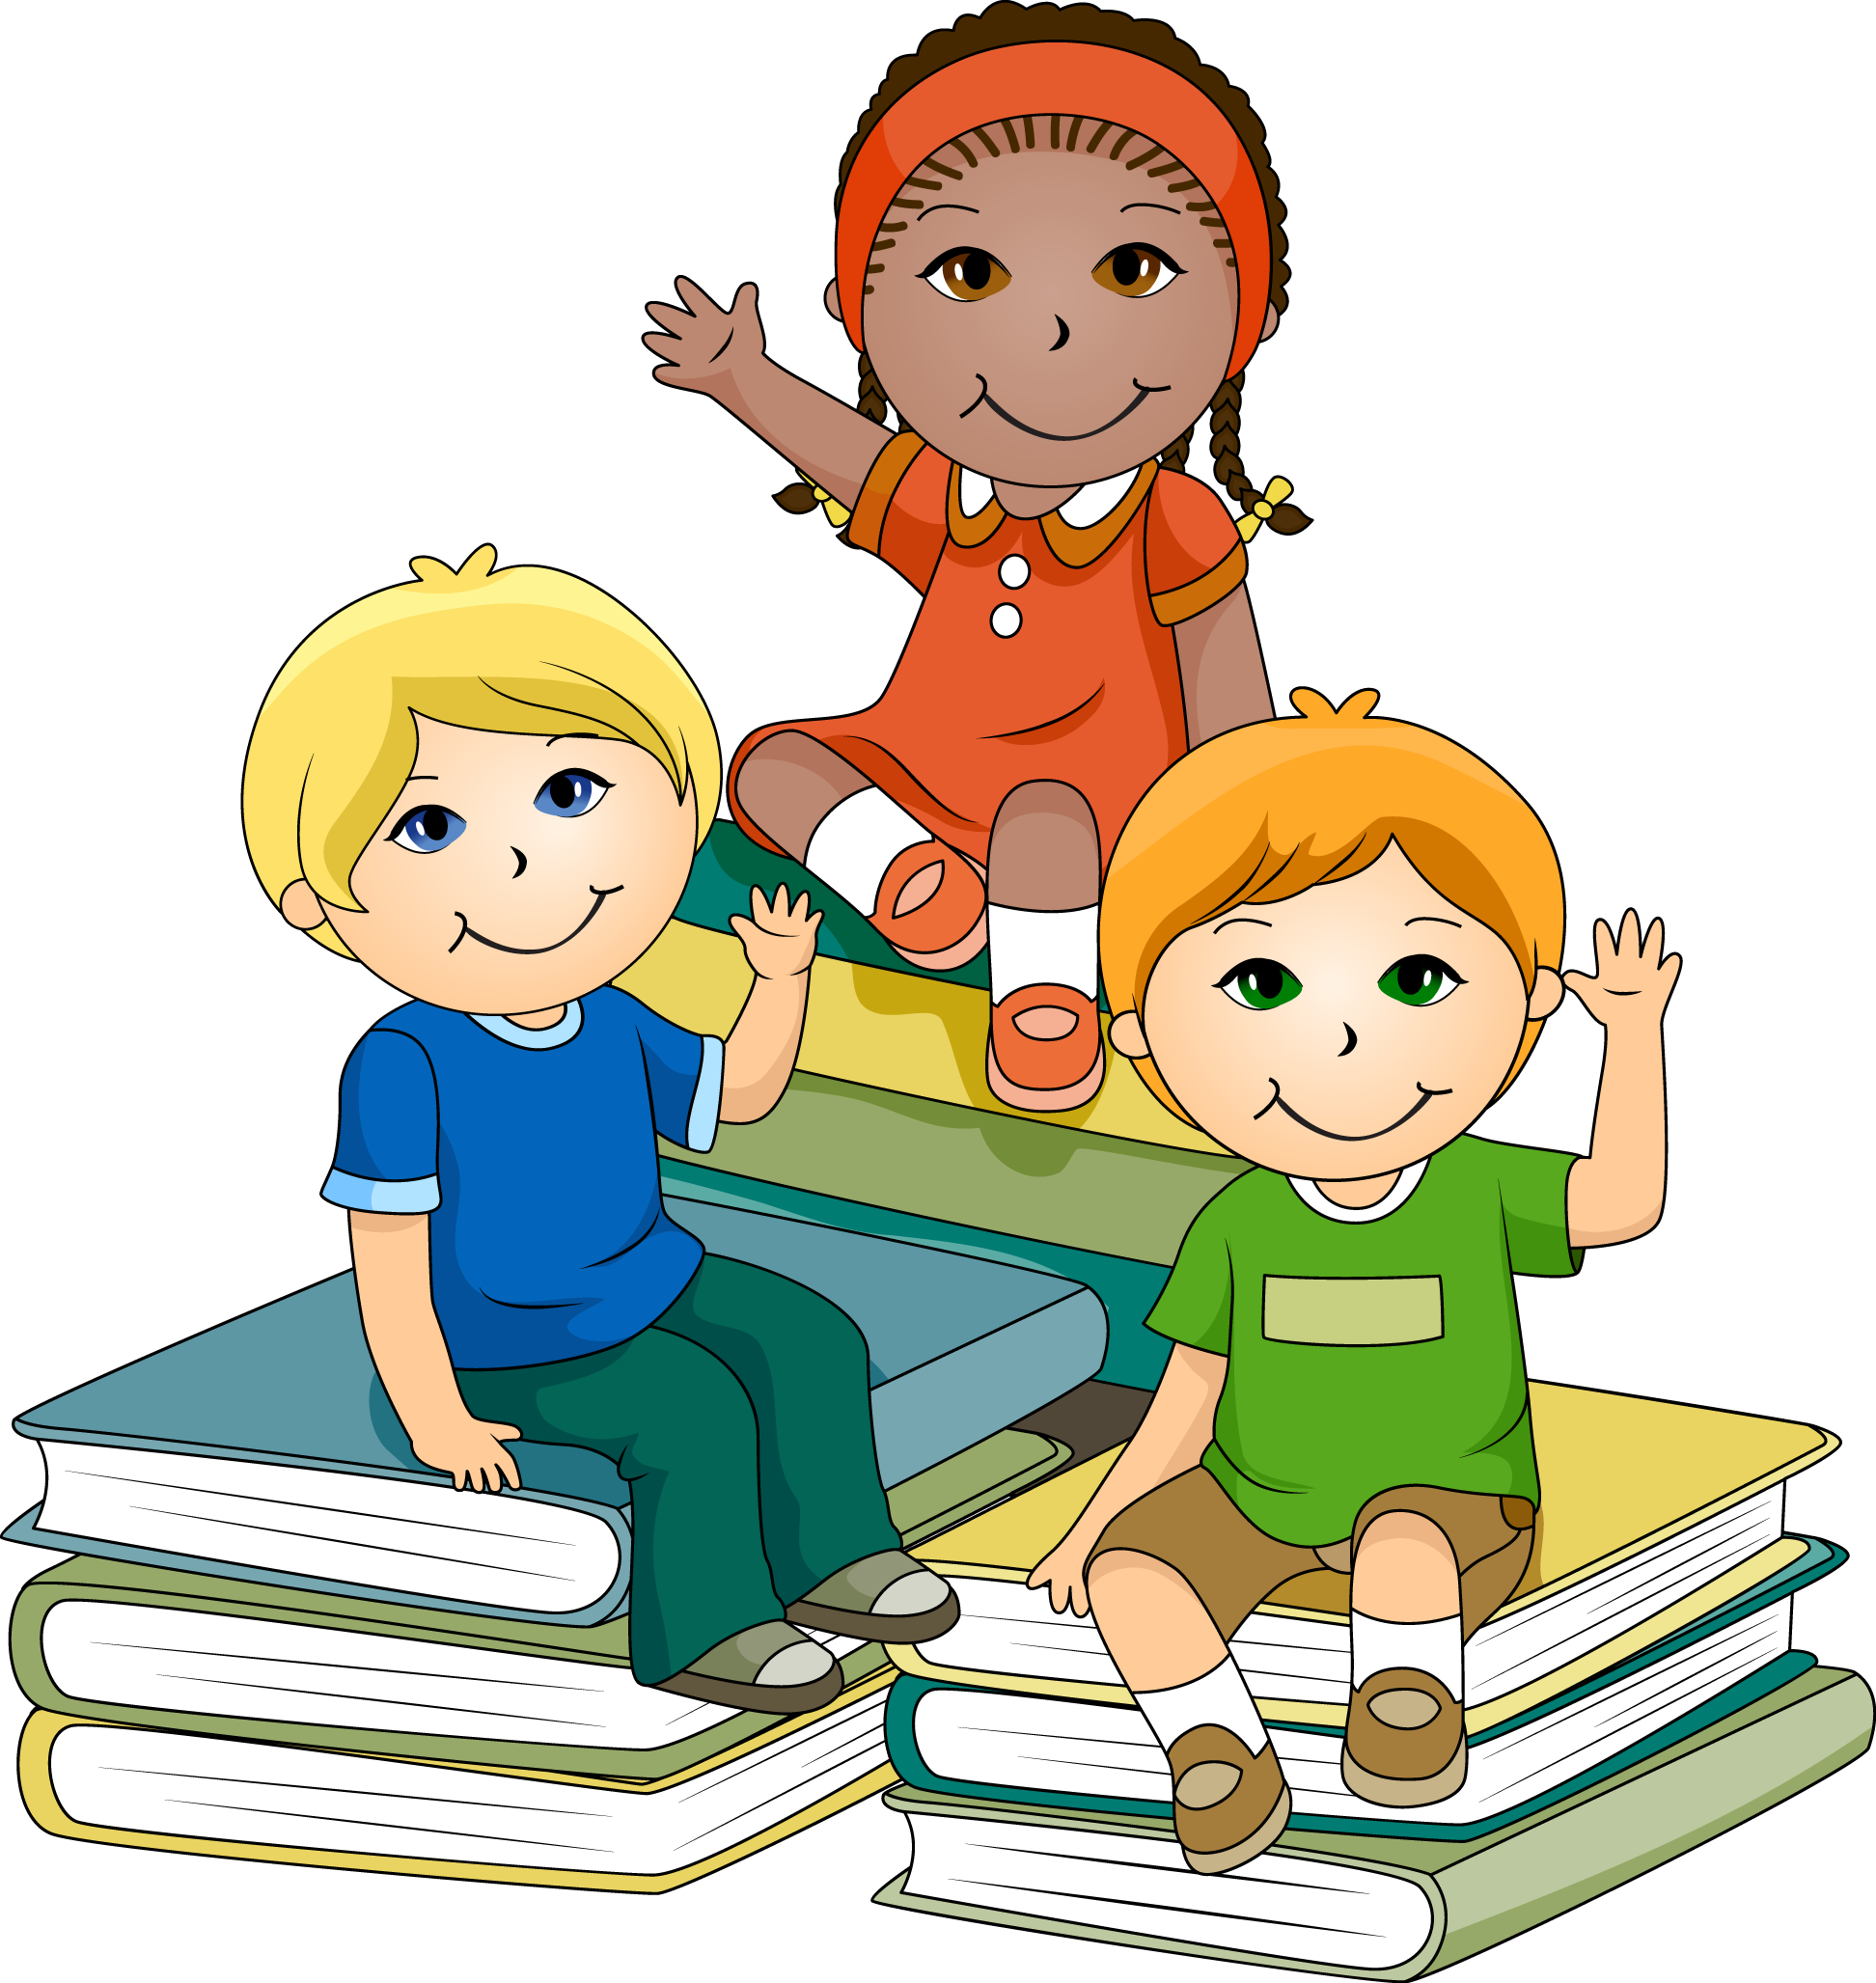 Kids playing on school playground clipart png download Get Creative with This Free Kids Clip Art! | Pinterest | Audio books ... png download